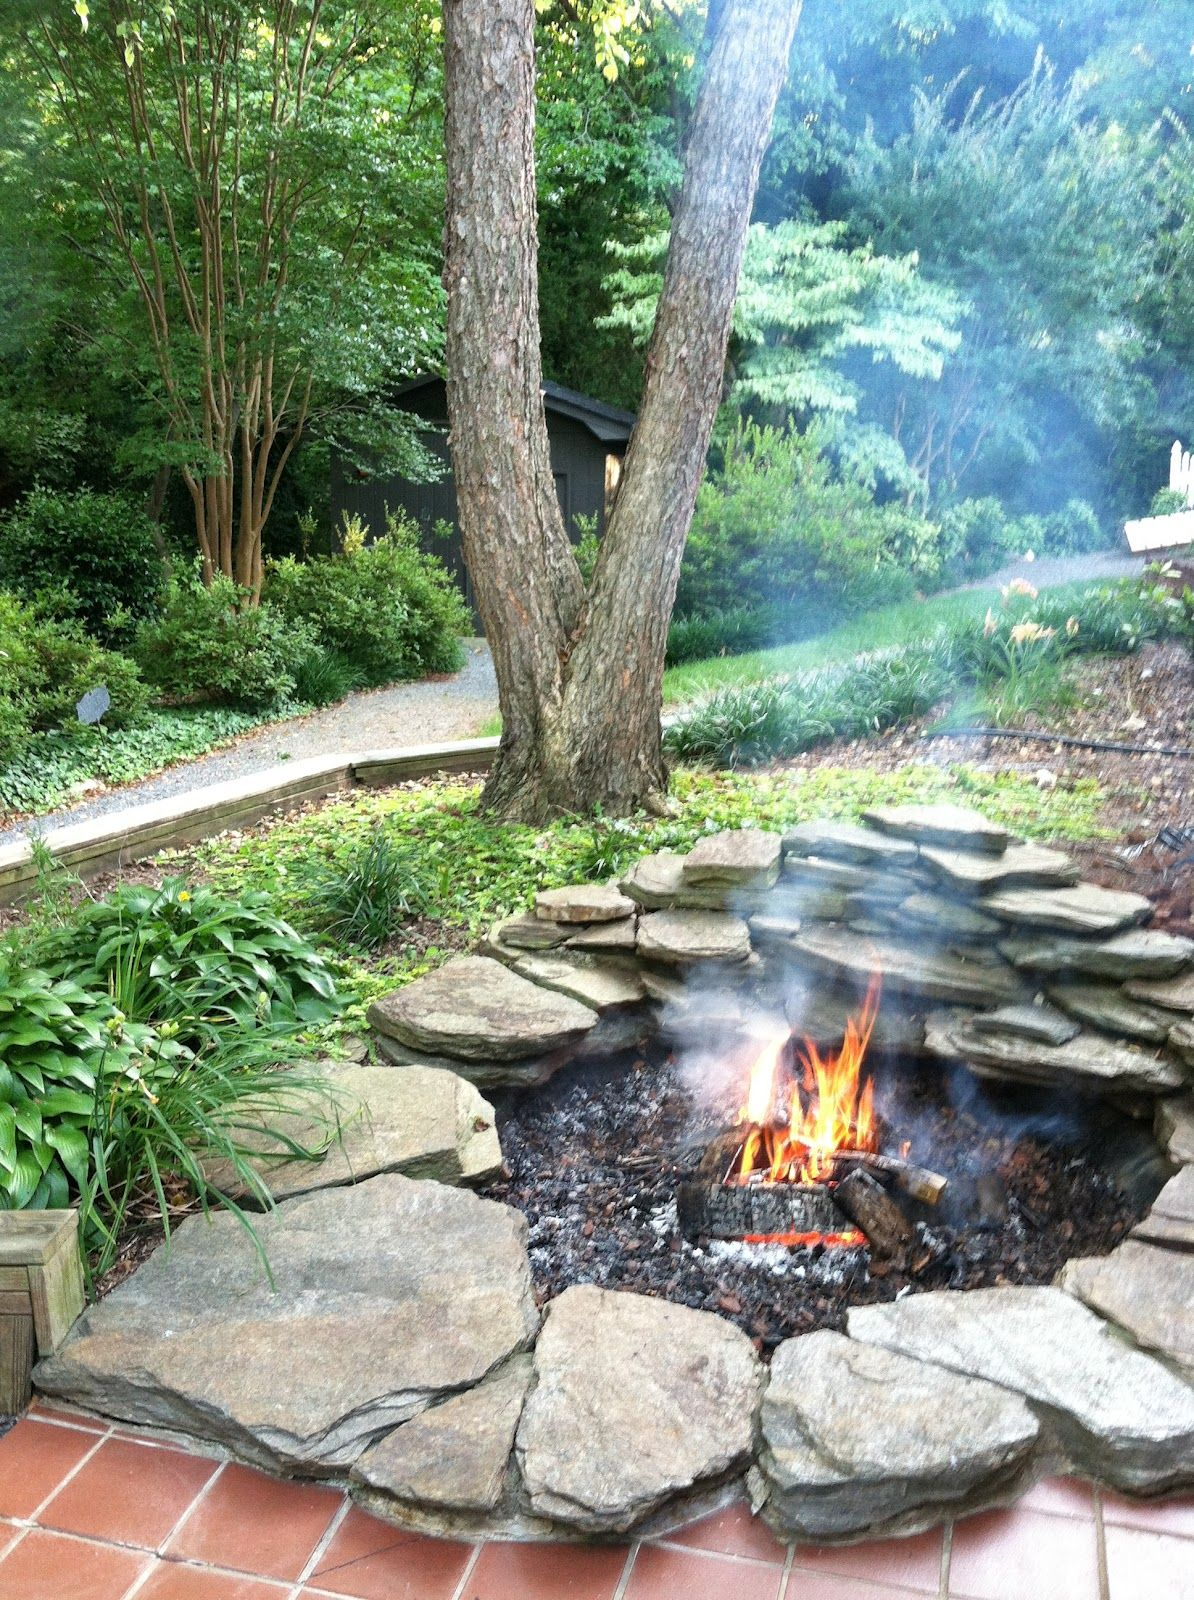 10 fire pit ideas bhg 39 s time savers for busy families - Small backyard fire pit ideas ...